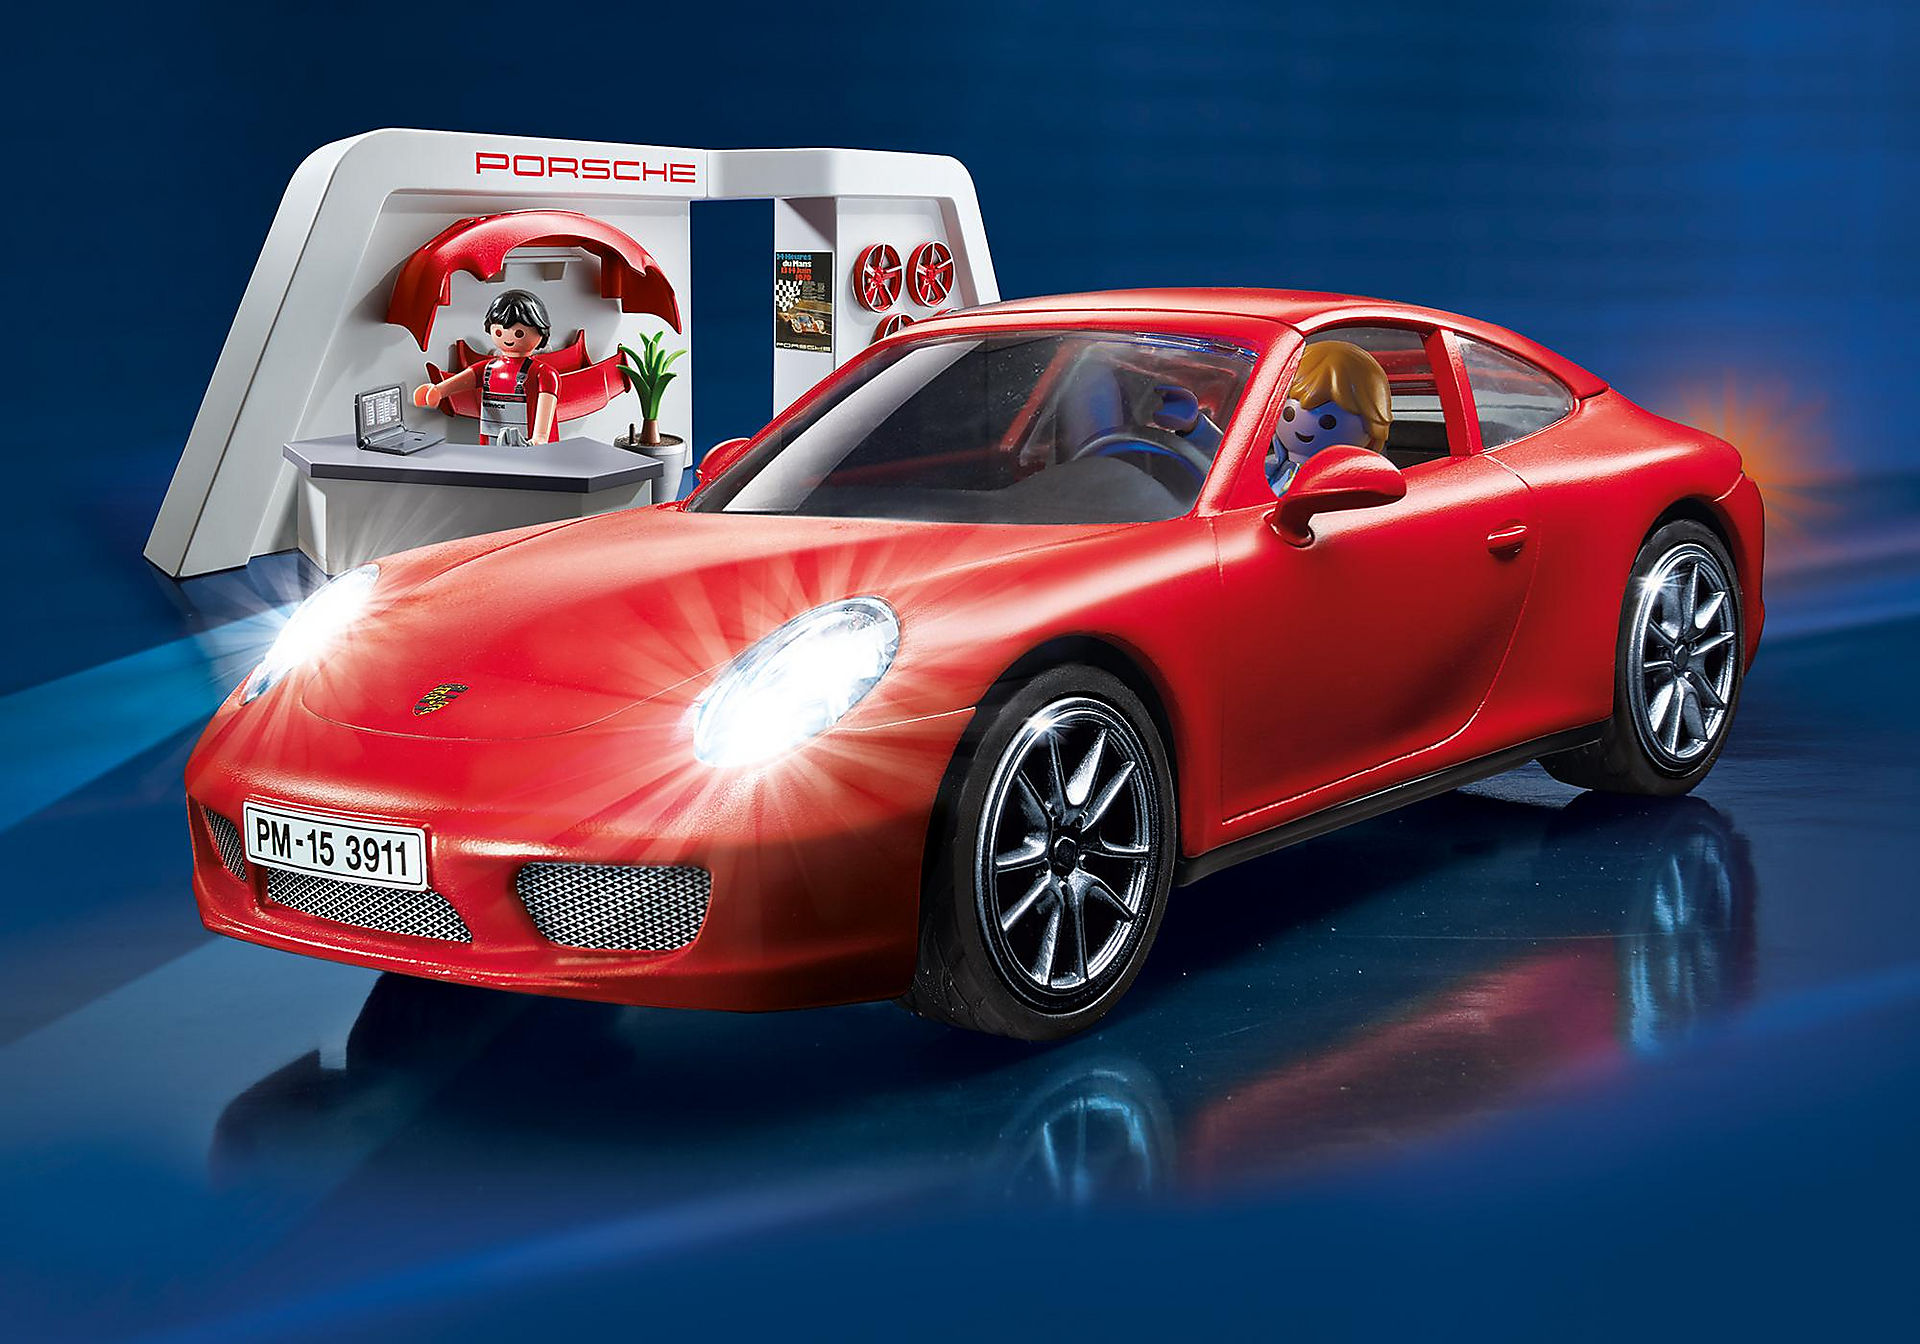 http://media.playmobil.com/i/playmobil/3911_product_detail/Porsche 911 Carrera S